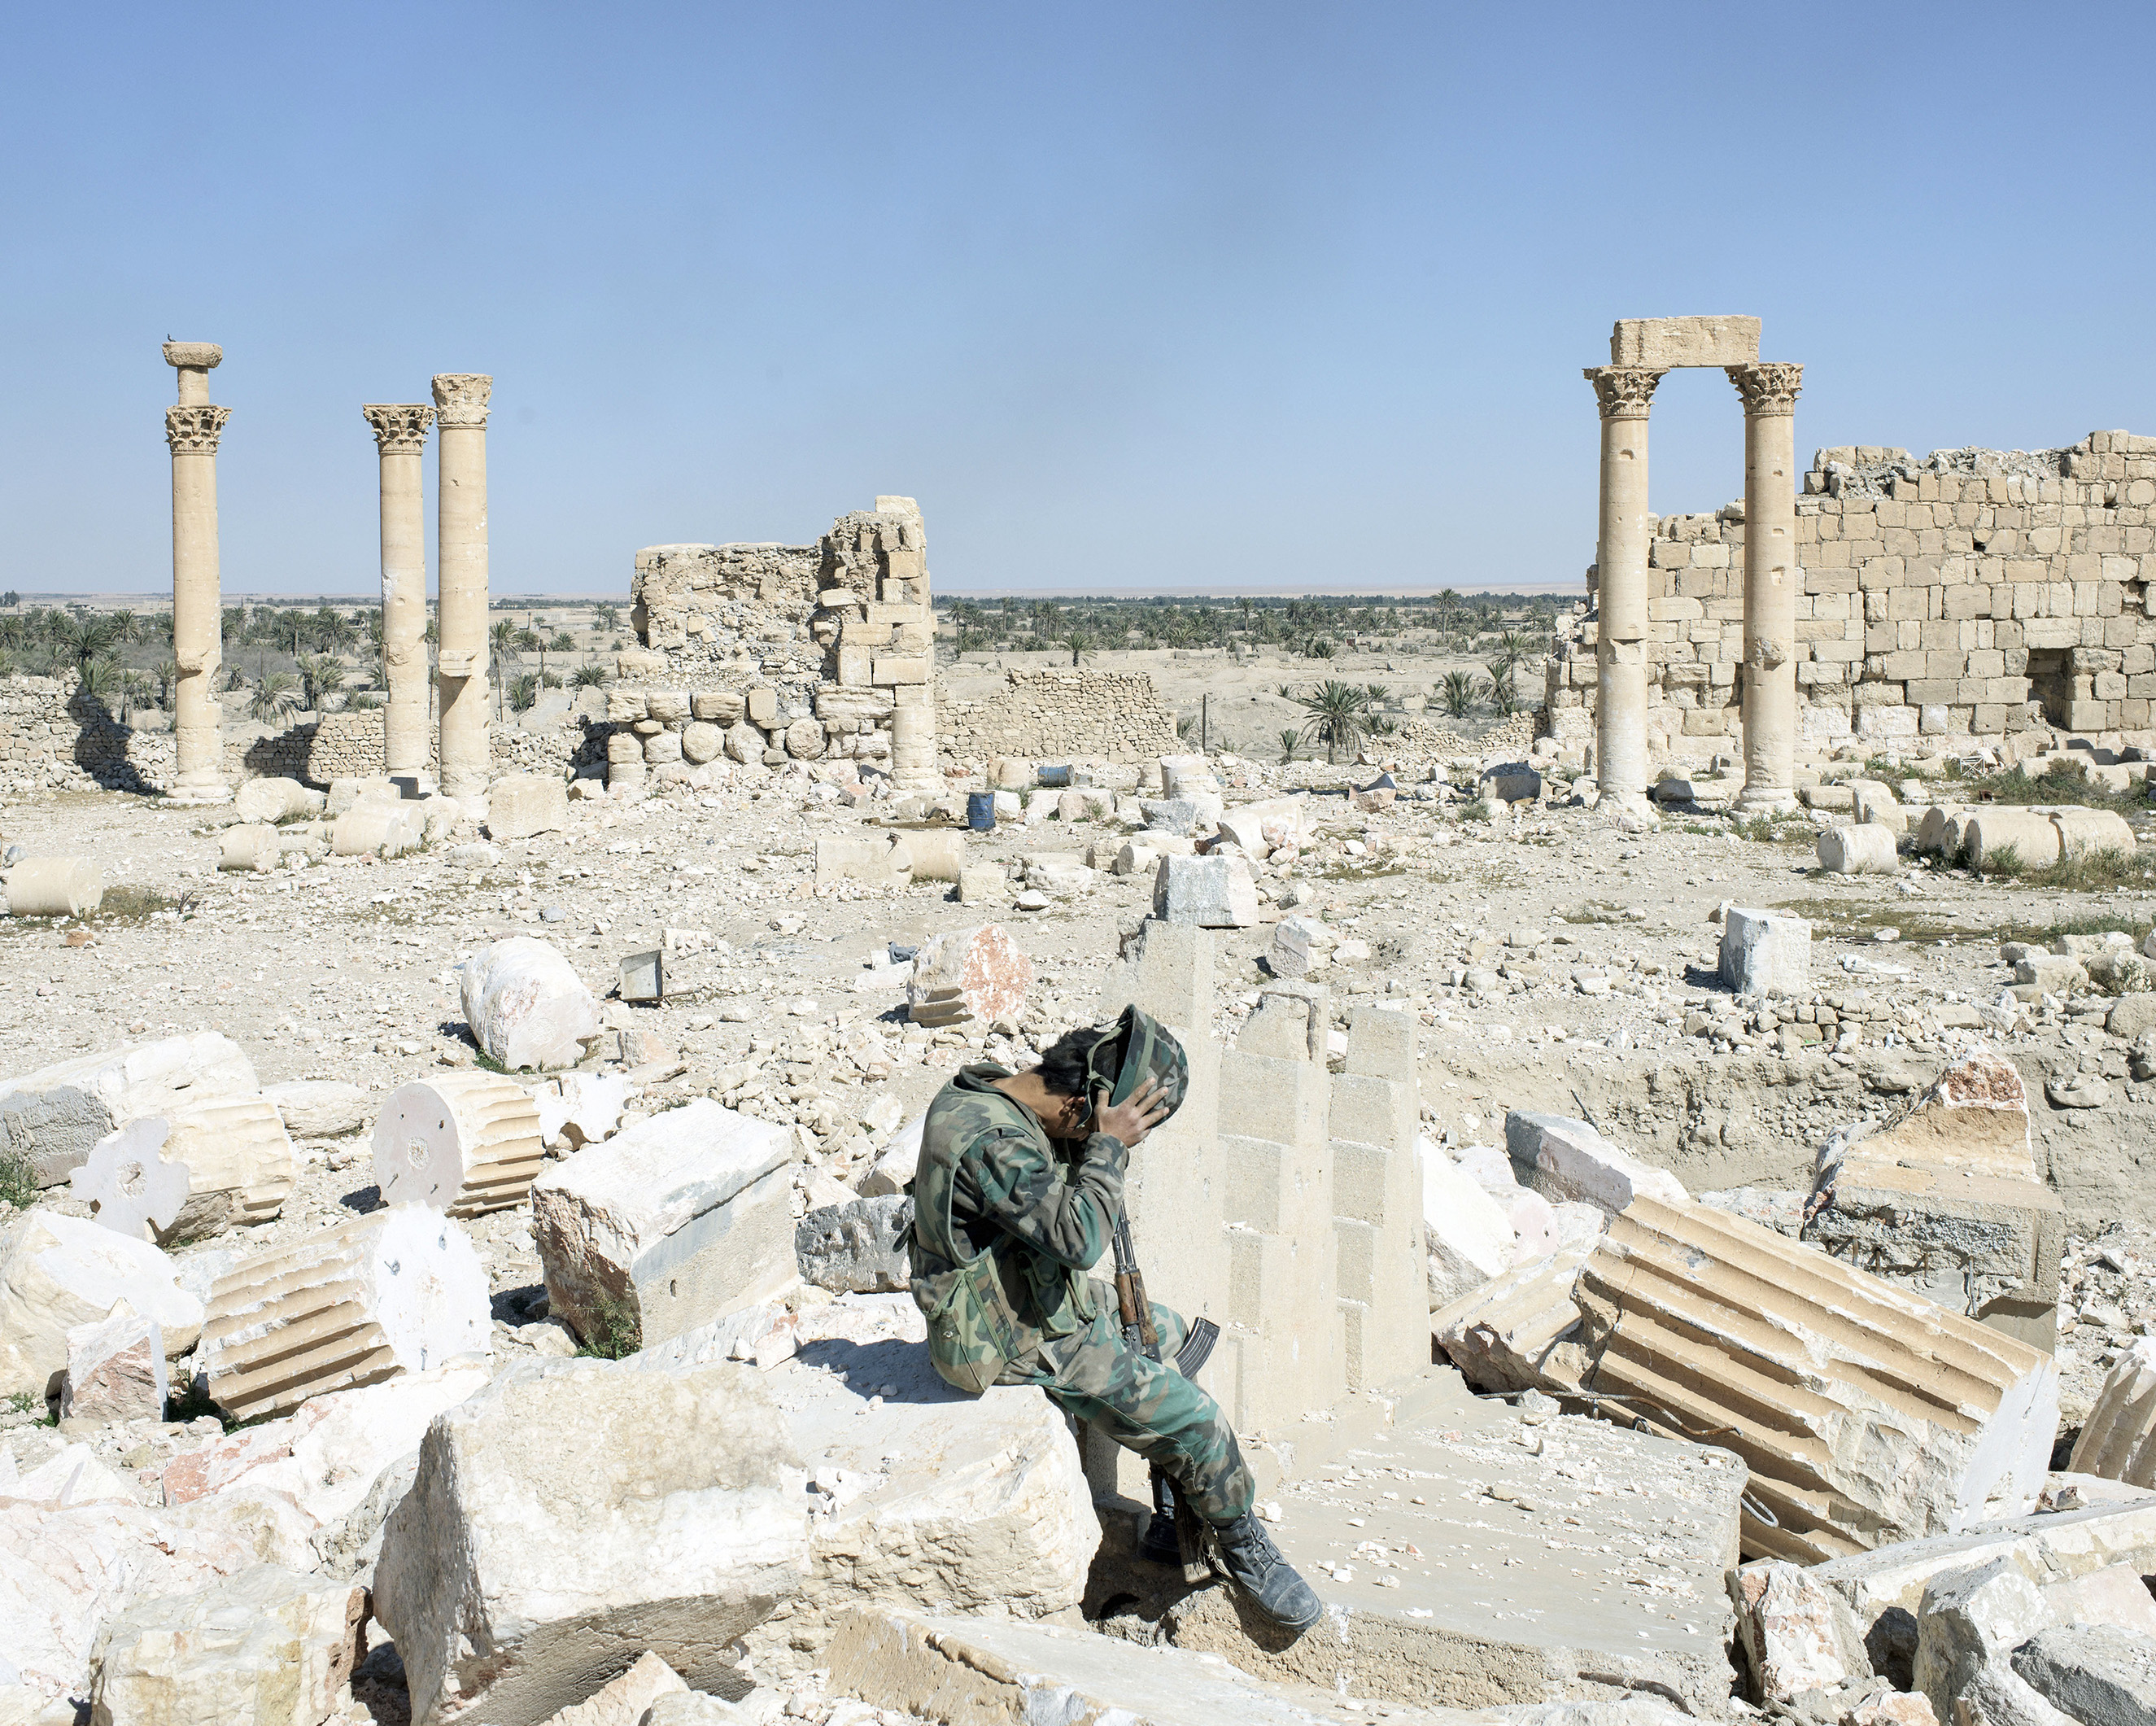 A Syrian army soldier removes his helmet while sitting on rubble of the former Temple of Bel, one of several sites destroyed by ISIS militants, in ancient Palmyra, Syria, April 1, 2016.From  Inside War Ravaged Syria